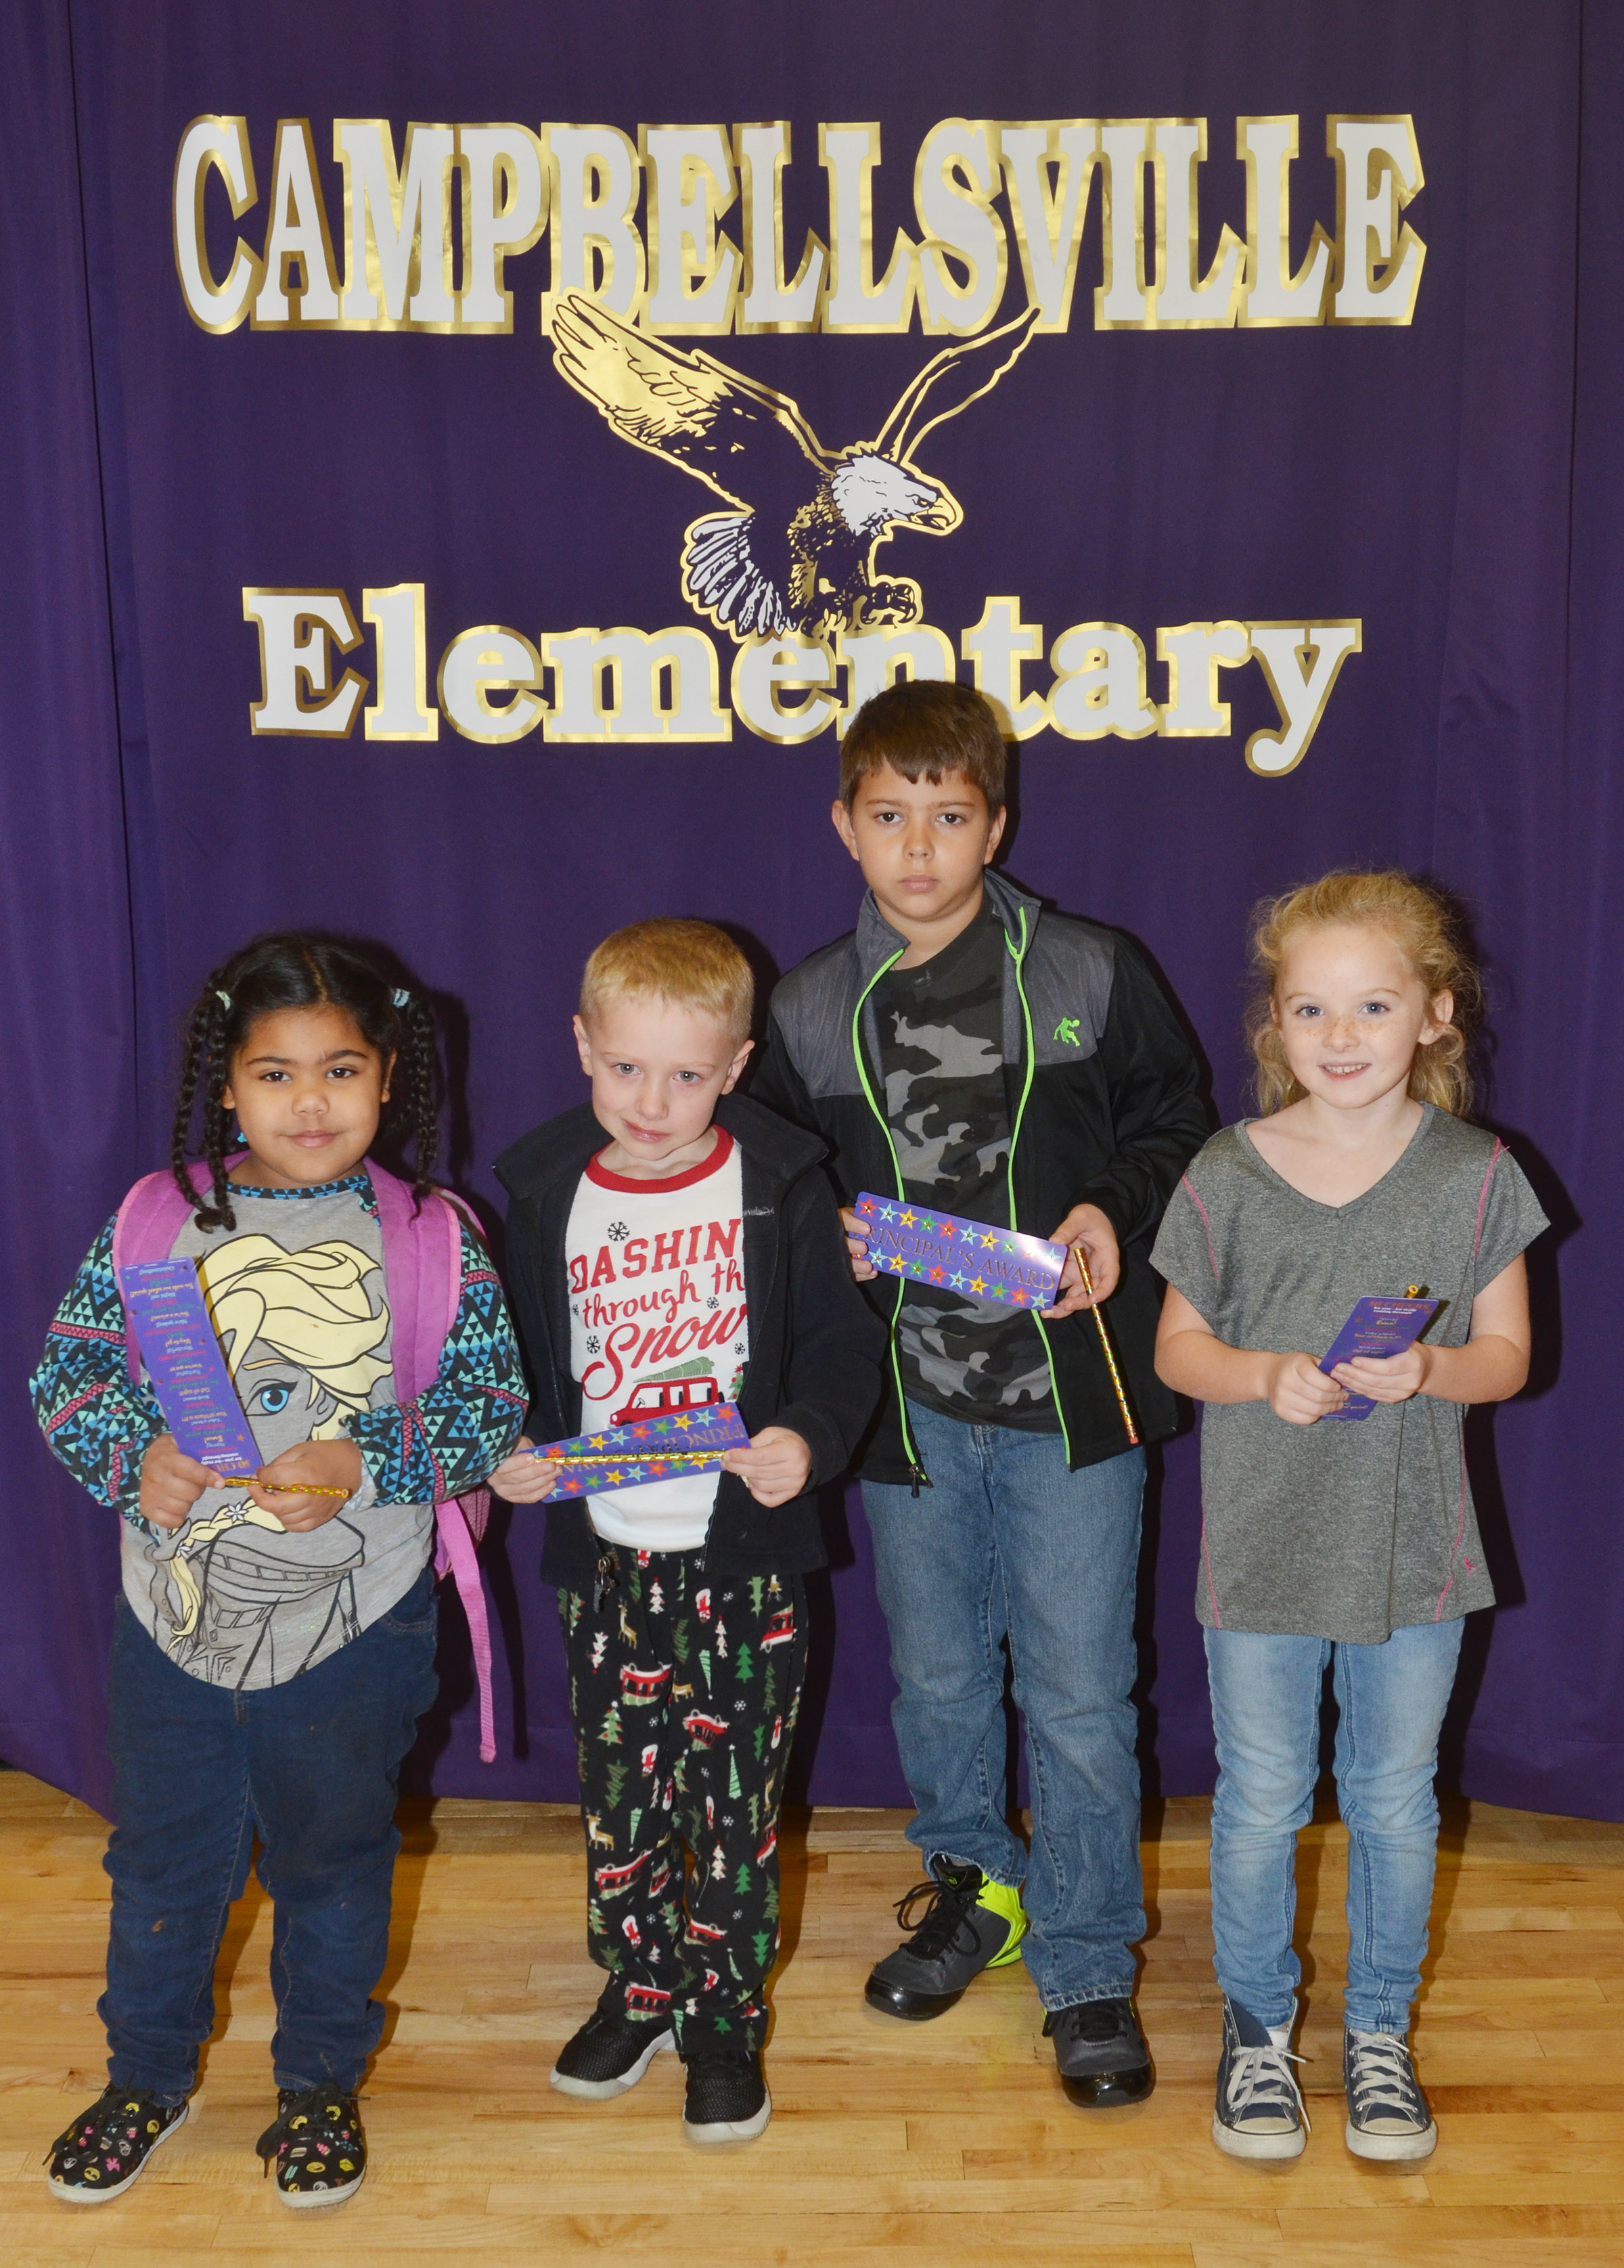 From left are kindergartener Linnly Adams, first-grader Jackson Wright, fourth-grader Stanley Napper and second-grader Katelynn Vest. Absent from the photo are third-grader Destiny Choate and fifth-grader Daisy Wilkerson.